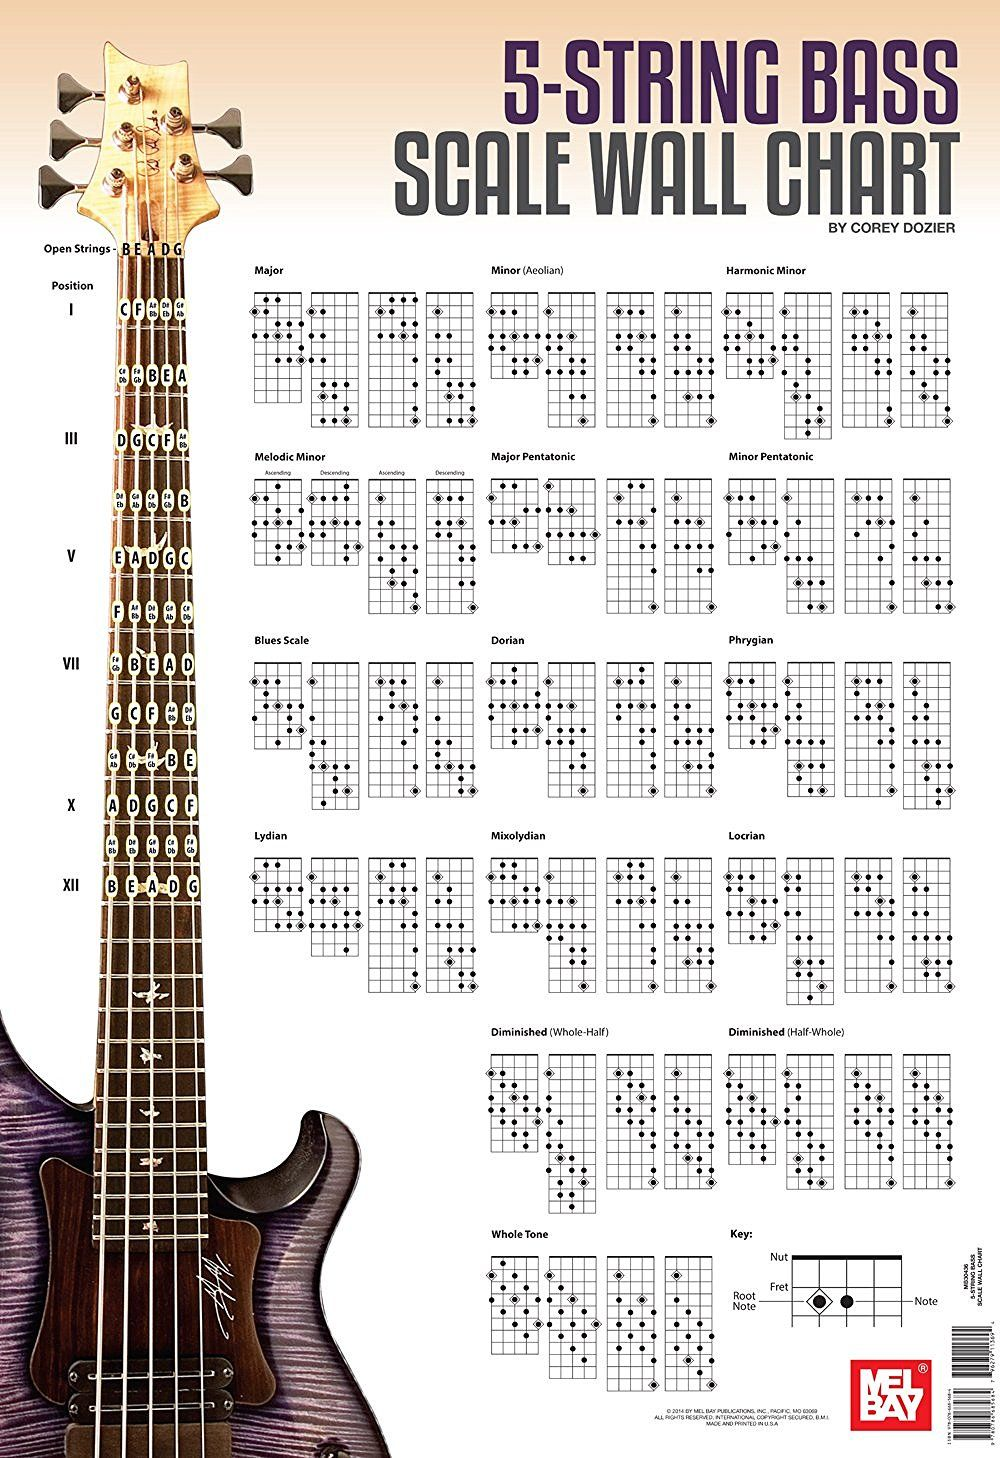 5 string bass scale wall chart guitar lessons bass guitar scales learn bass guitar bass. Black Bedroom Furniture Sets. Home Design Ideas